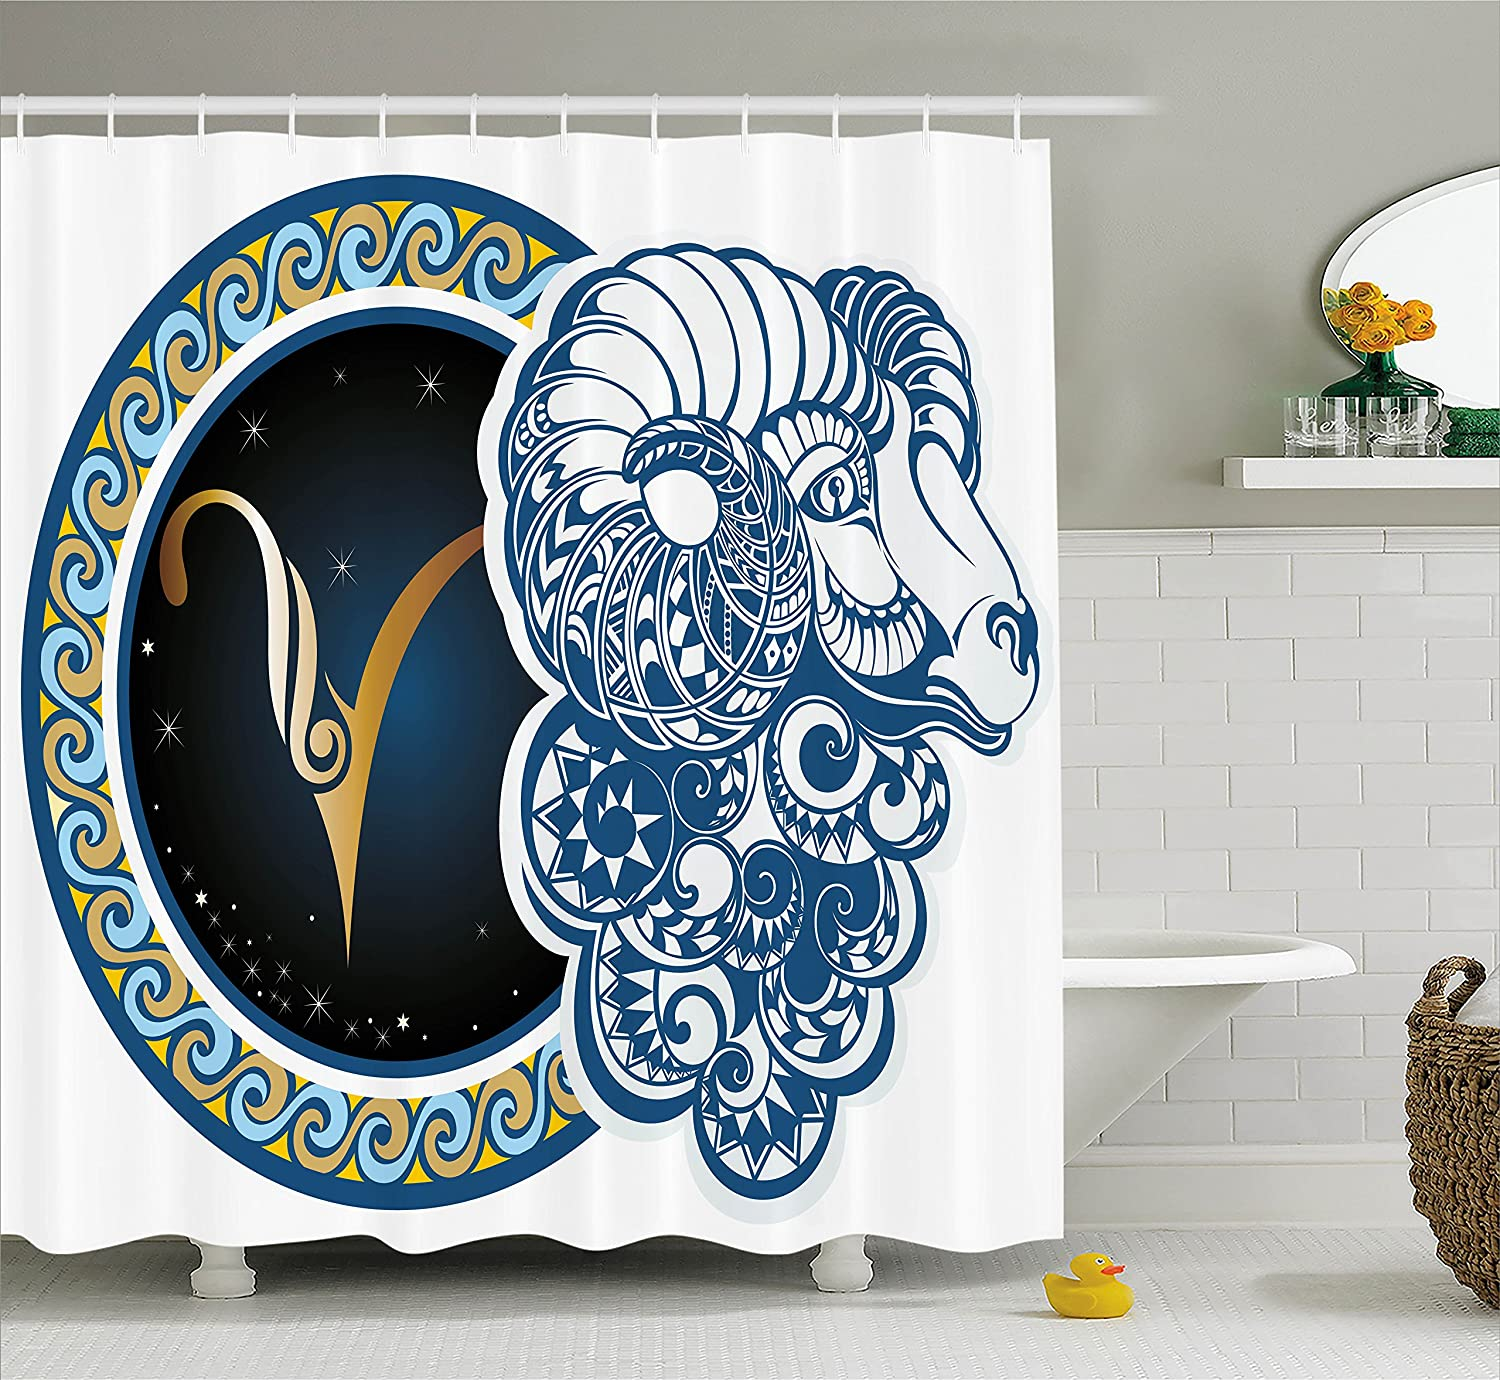 Ambesonne Zodiac Shower Curtain Astrological Aries Symbol With Horned Head Ram Goat Animal Terrestrial Event Image Fabric Bathroom Decor Set Hooks